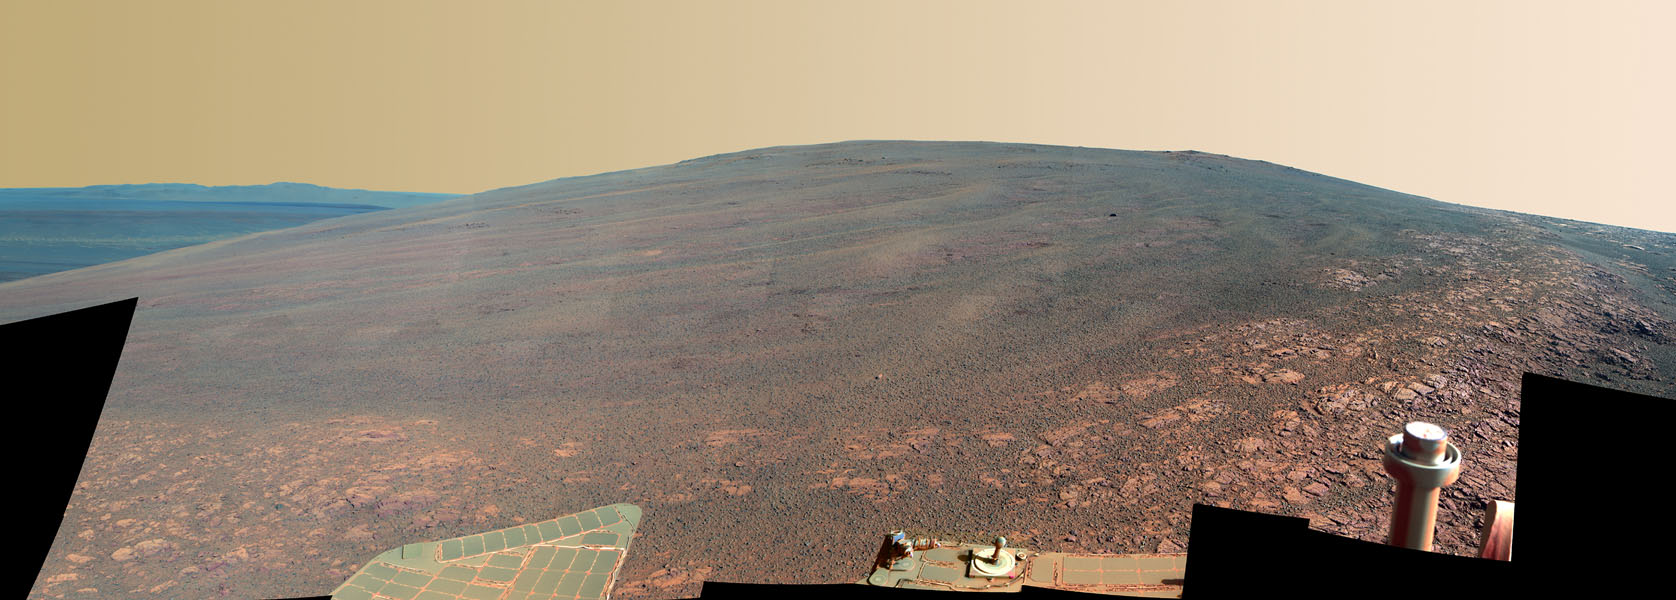 This scene shows the 'Murray Ridge' portion of the western rim of Endeavour Crater on Mars, as seen by NASA's Opportunity rover. It is presented in false color to make some differences between materials easier to see.